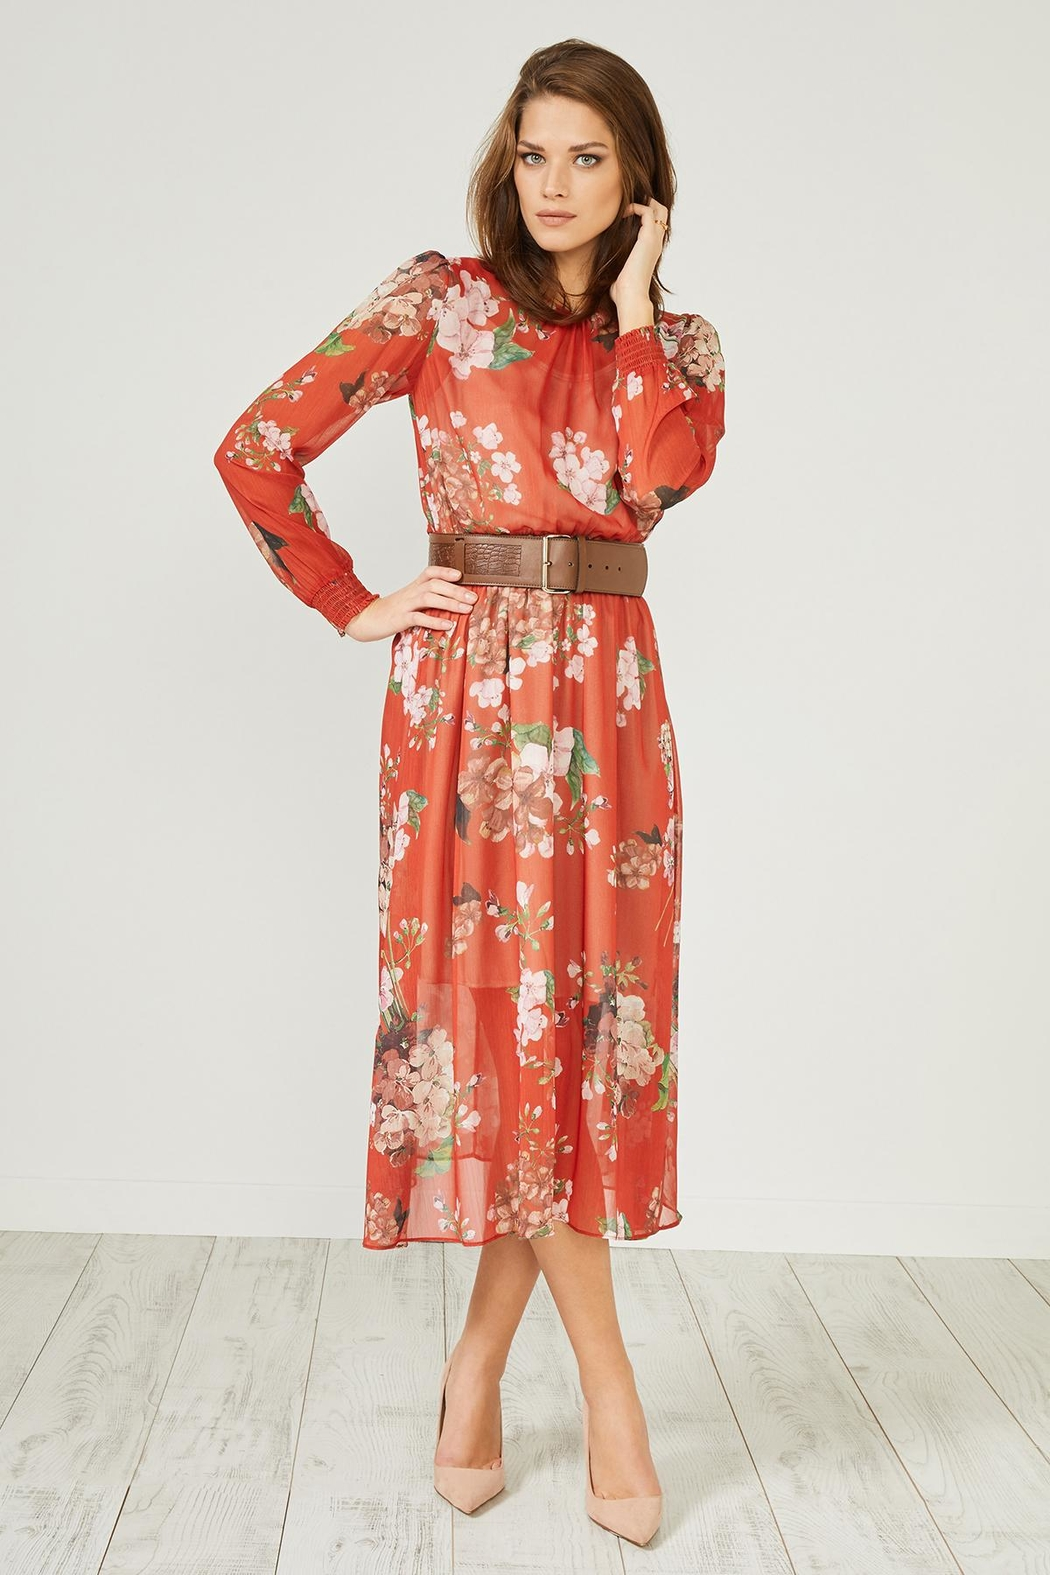 Urban Touch Red Floral Dress - Main Image